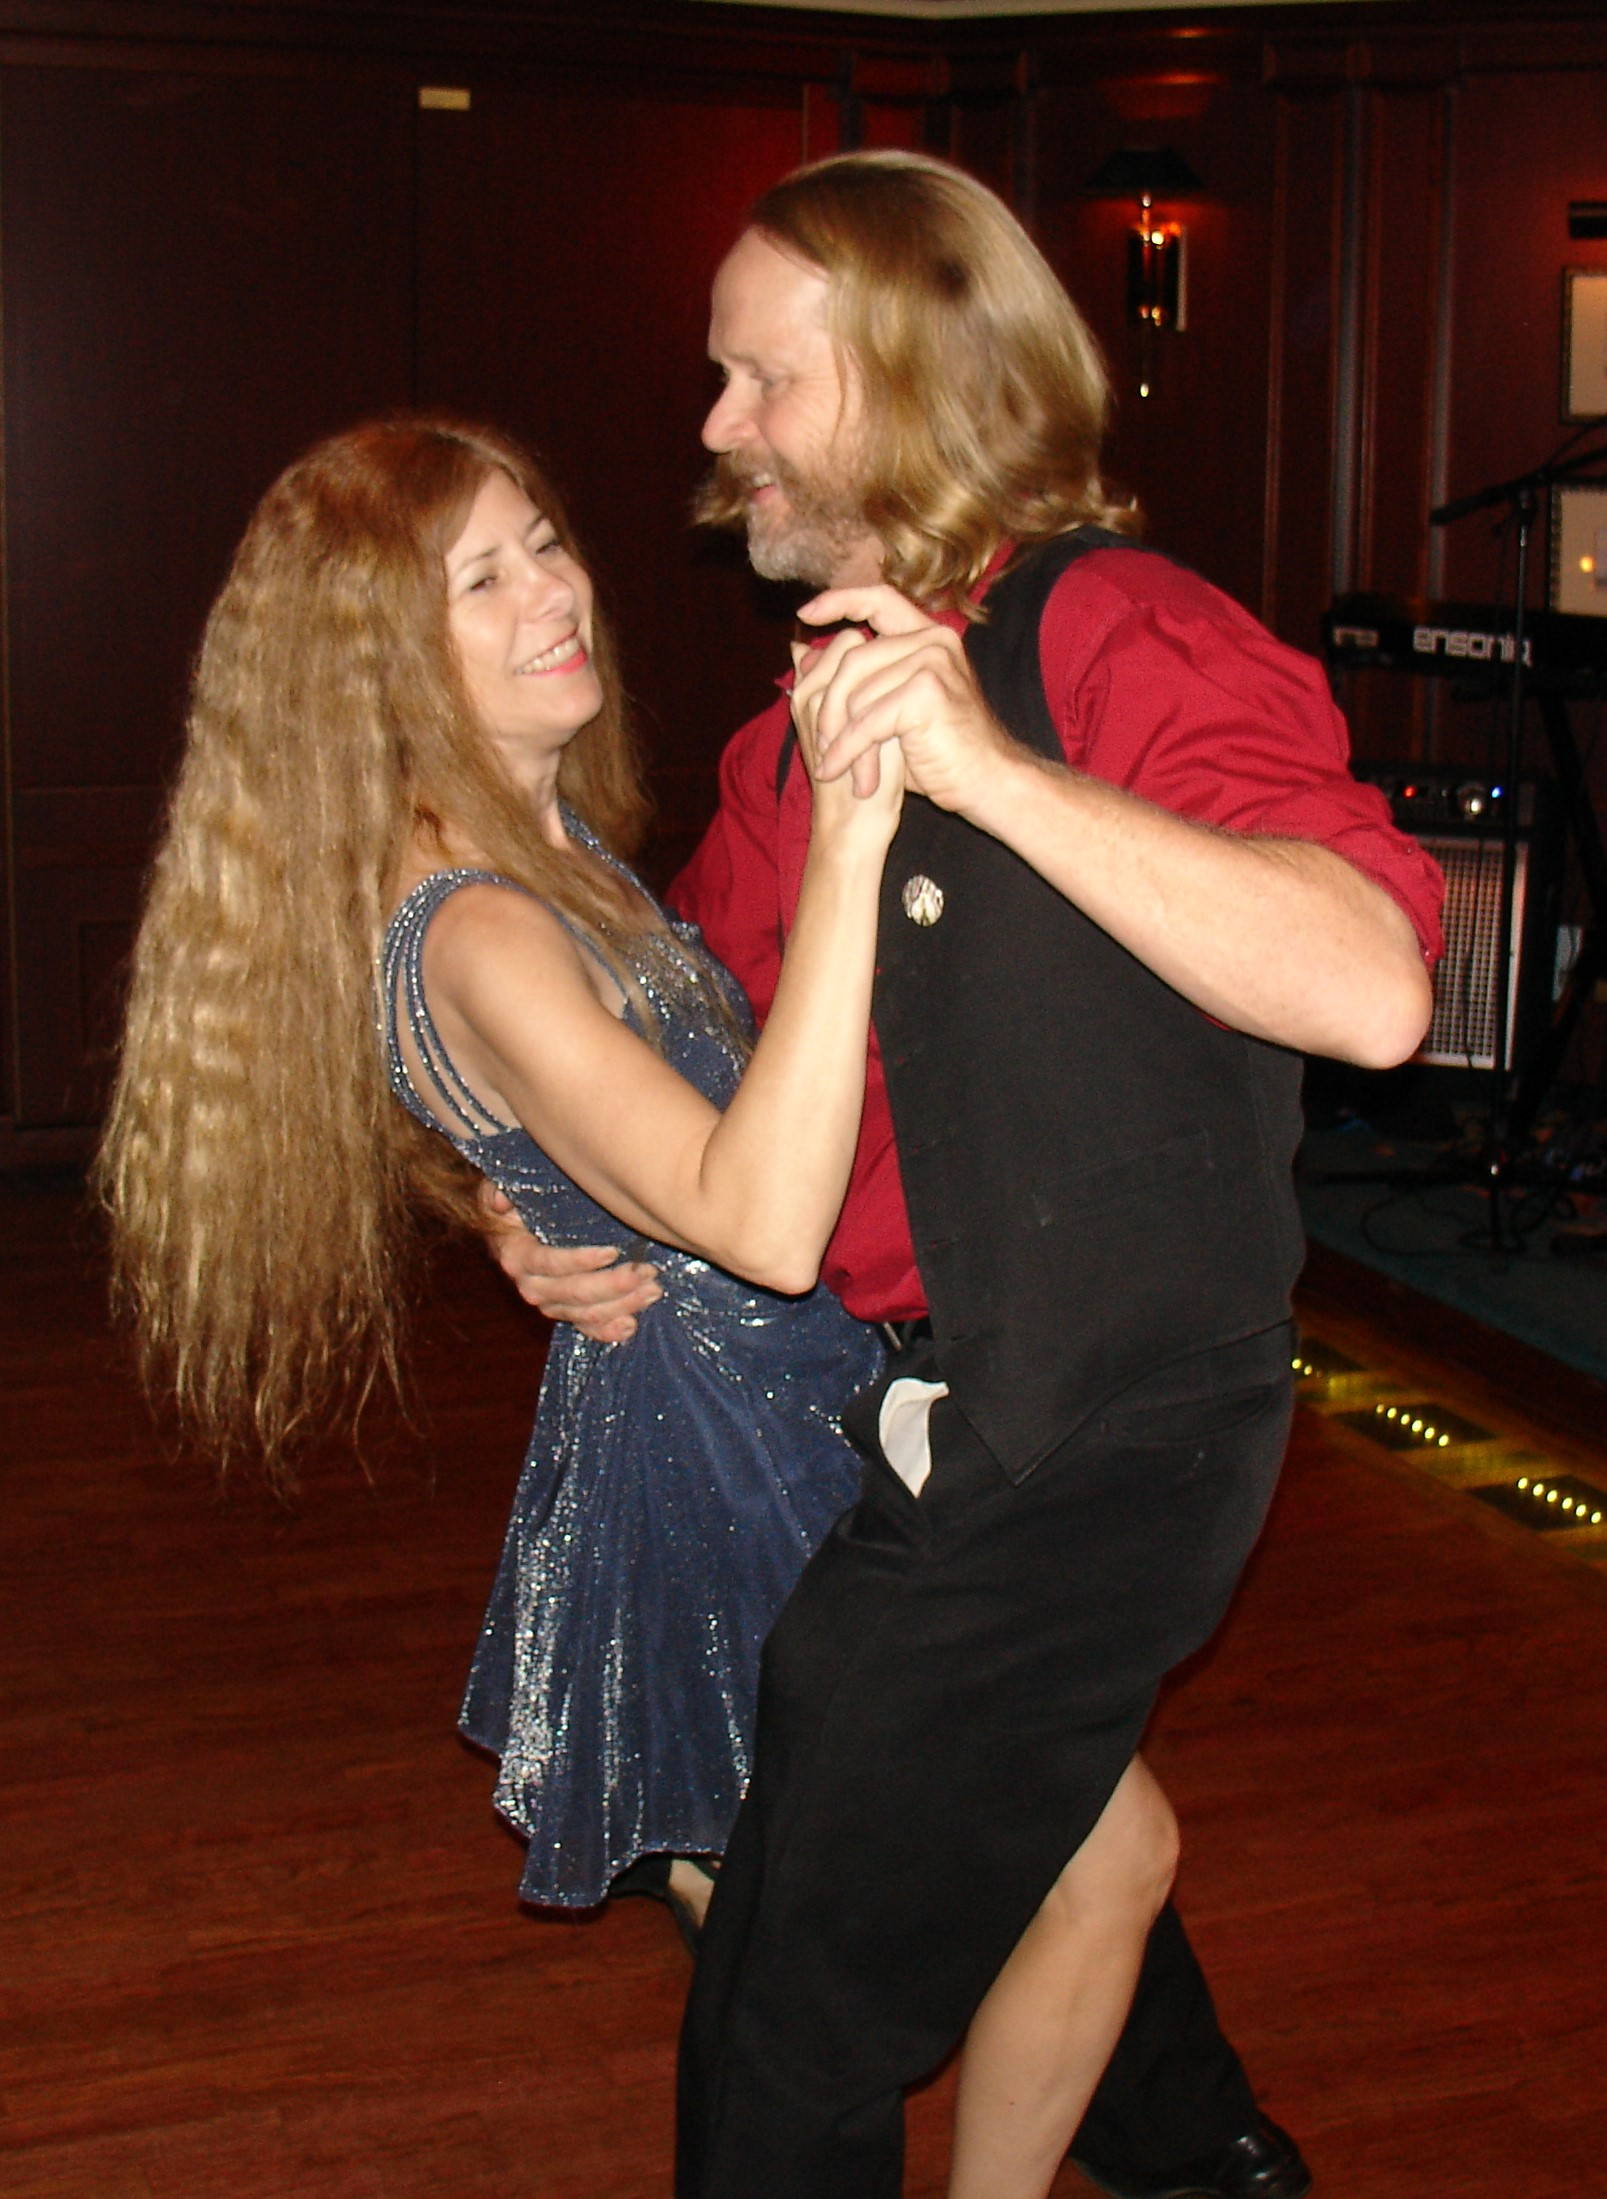 Our hobby is Ballroom Dancing which we try to do at least once a week.